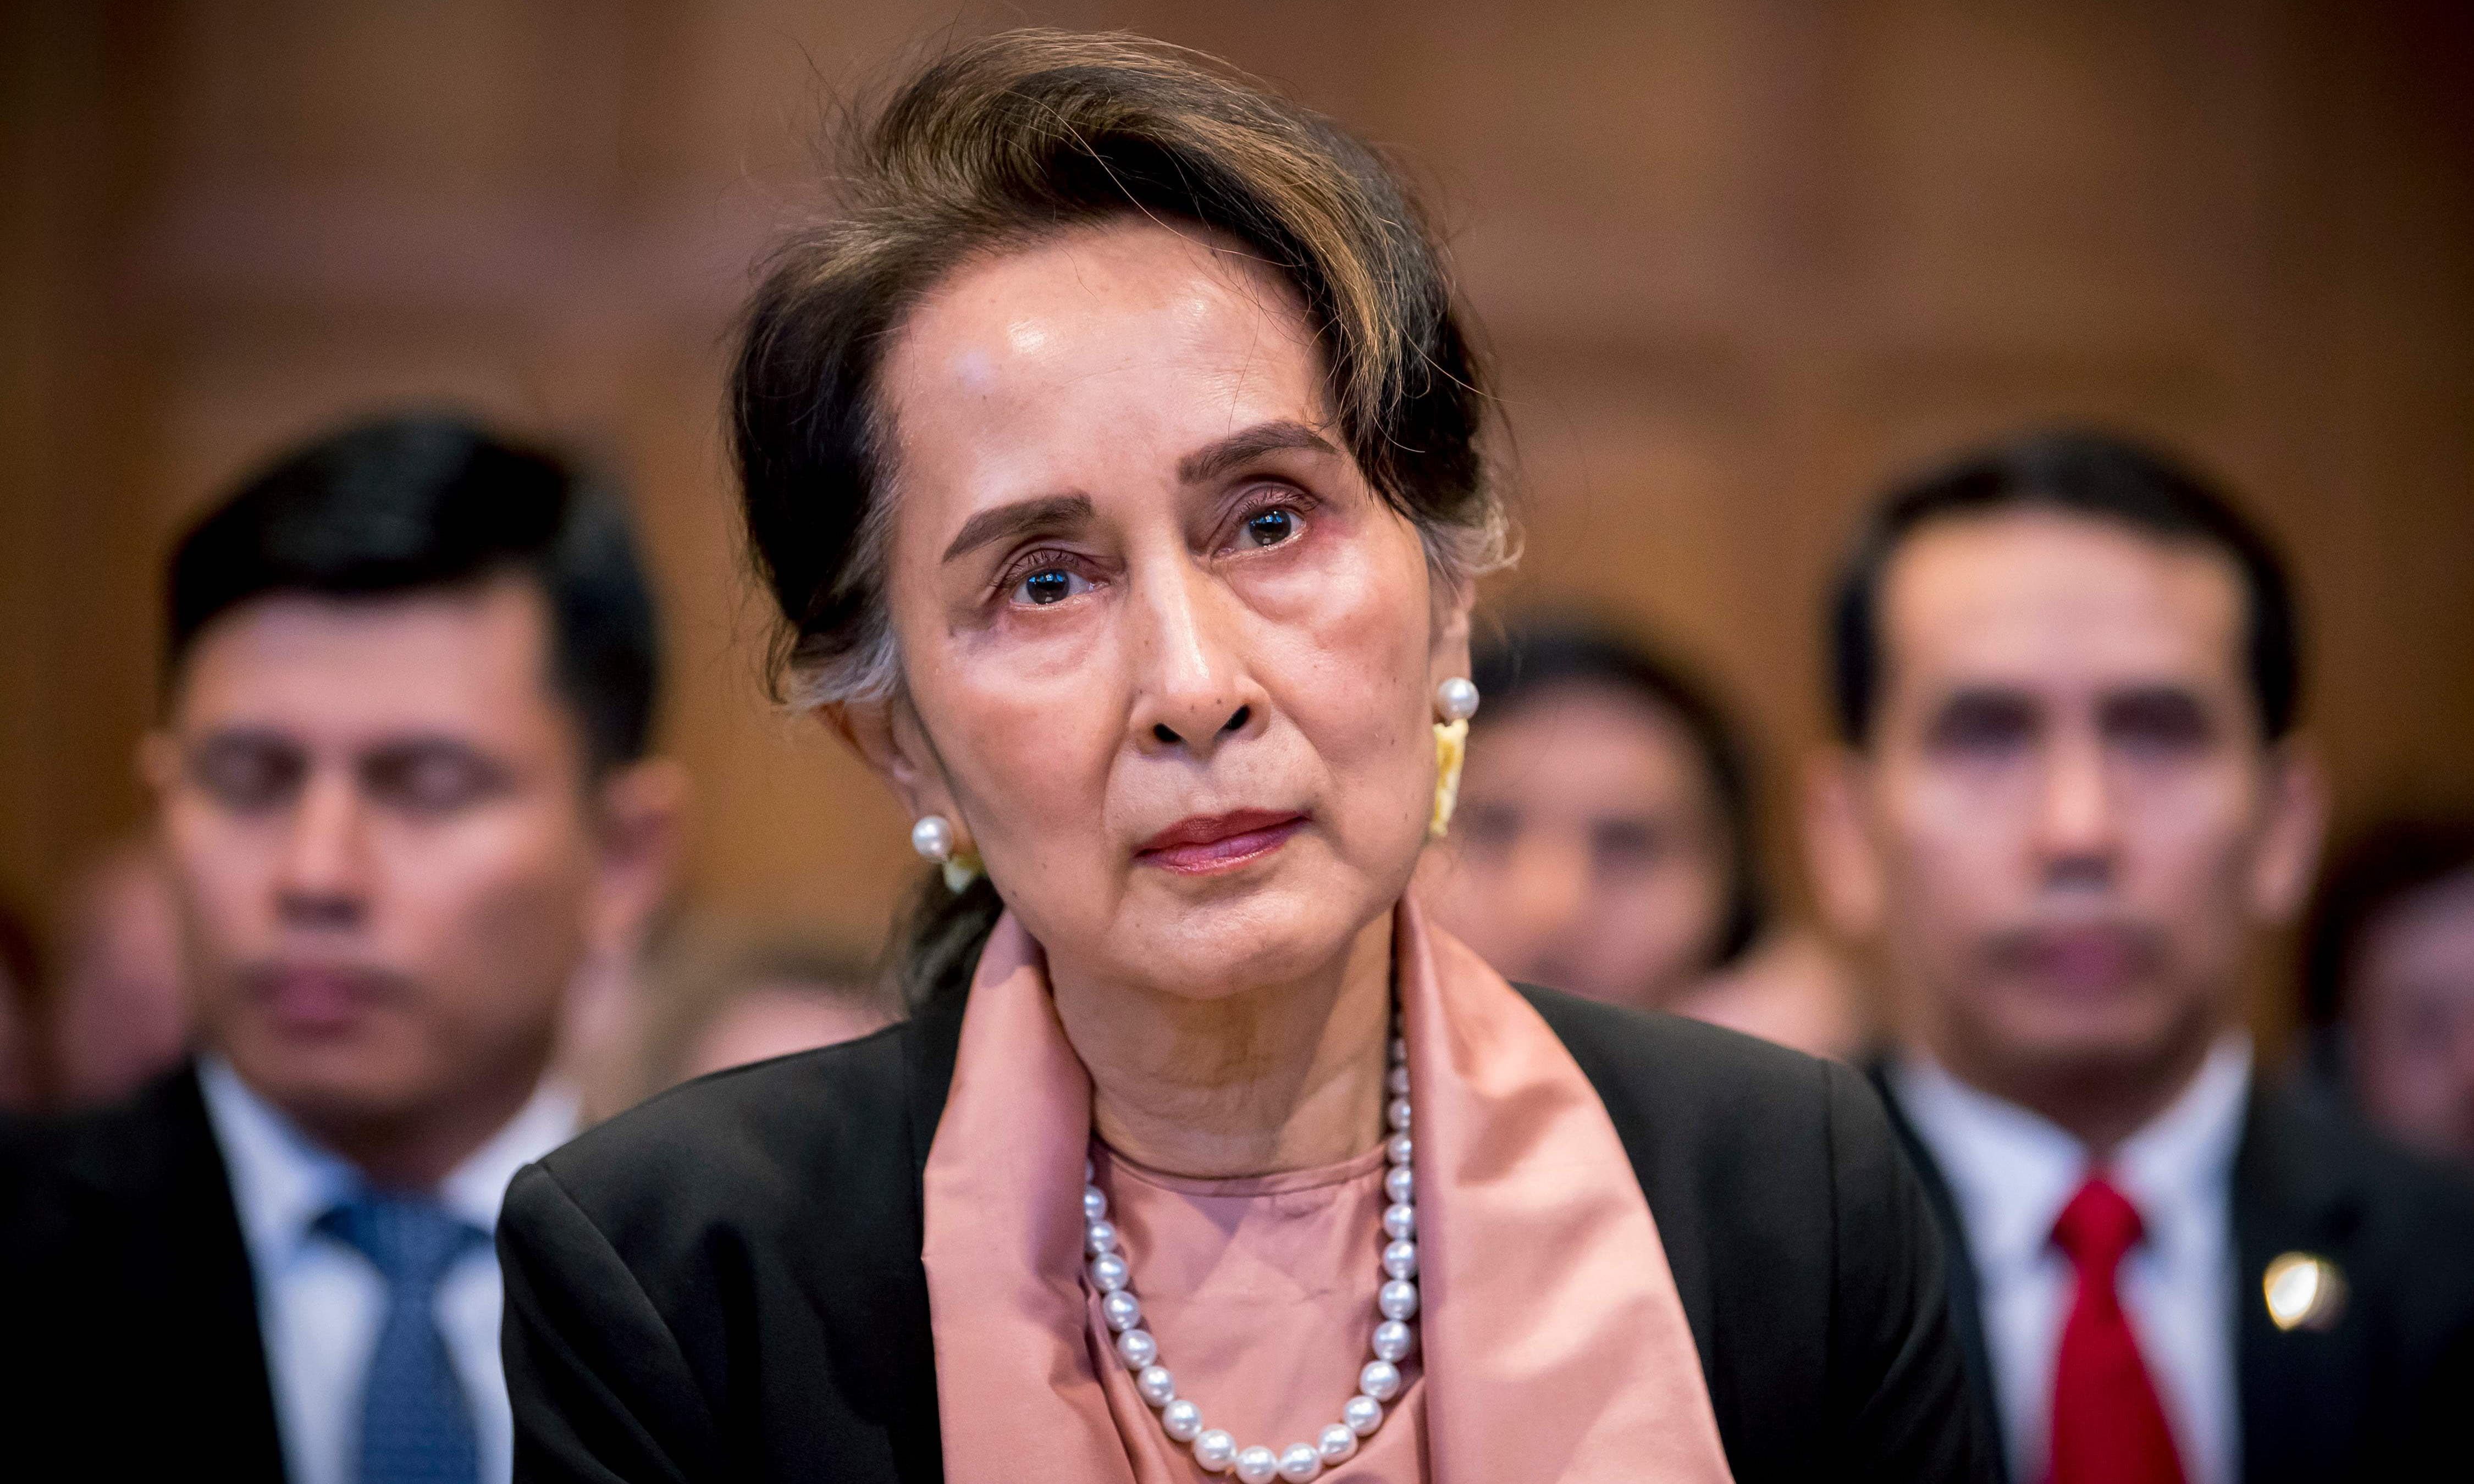 Myanmar's military seized power on Monday in a coup against the democratically elected government of Nobel laureate Aung San Suu Kyi, who was detained along with other leaders of her party. — AFP/File